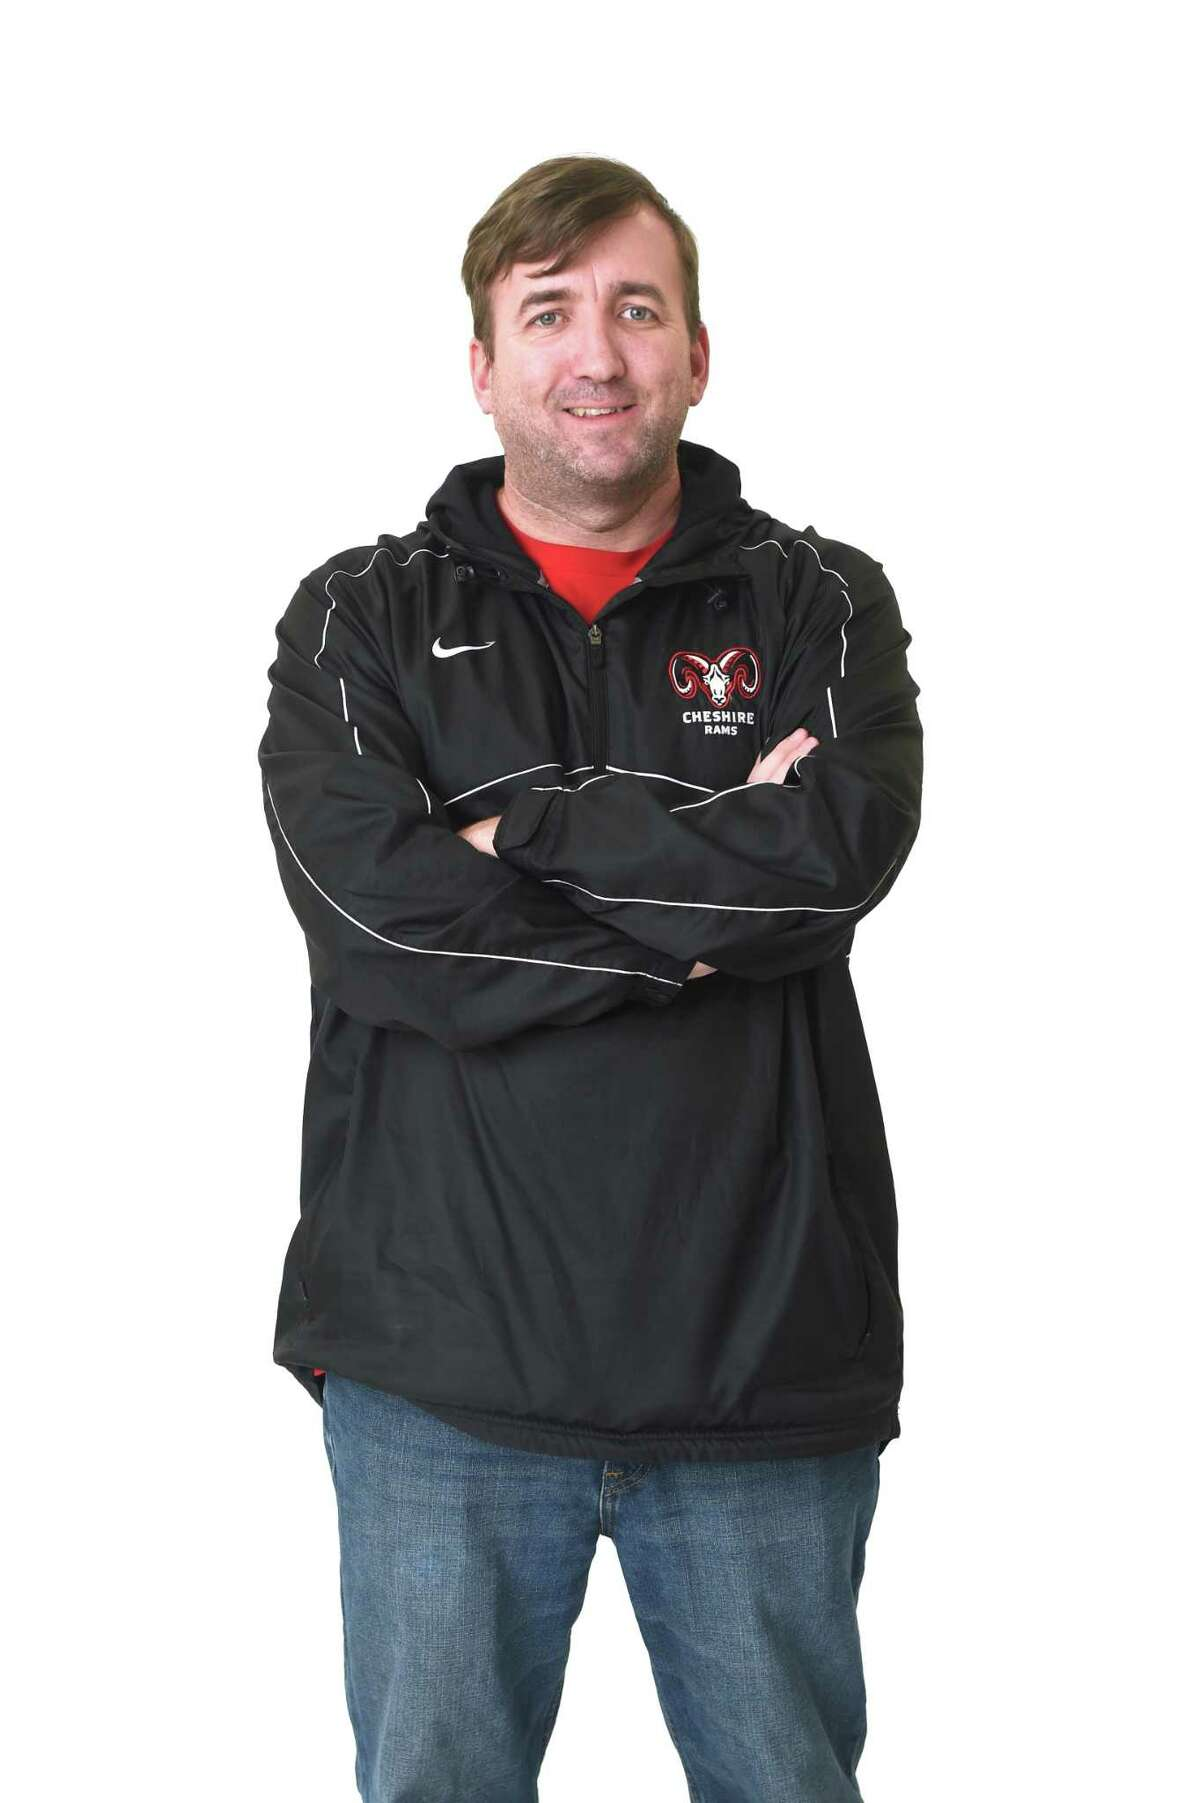 Cheshire boys swimming coach Kevin Reeder.